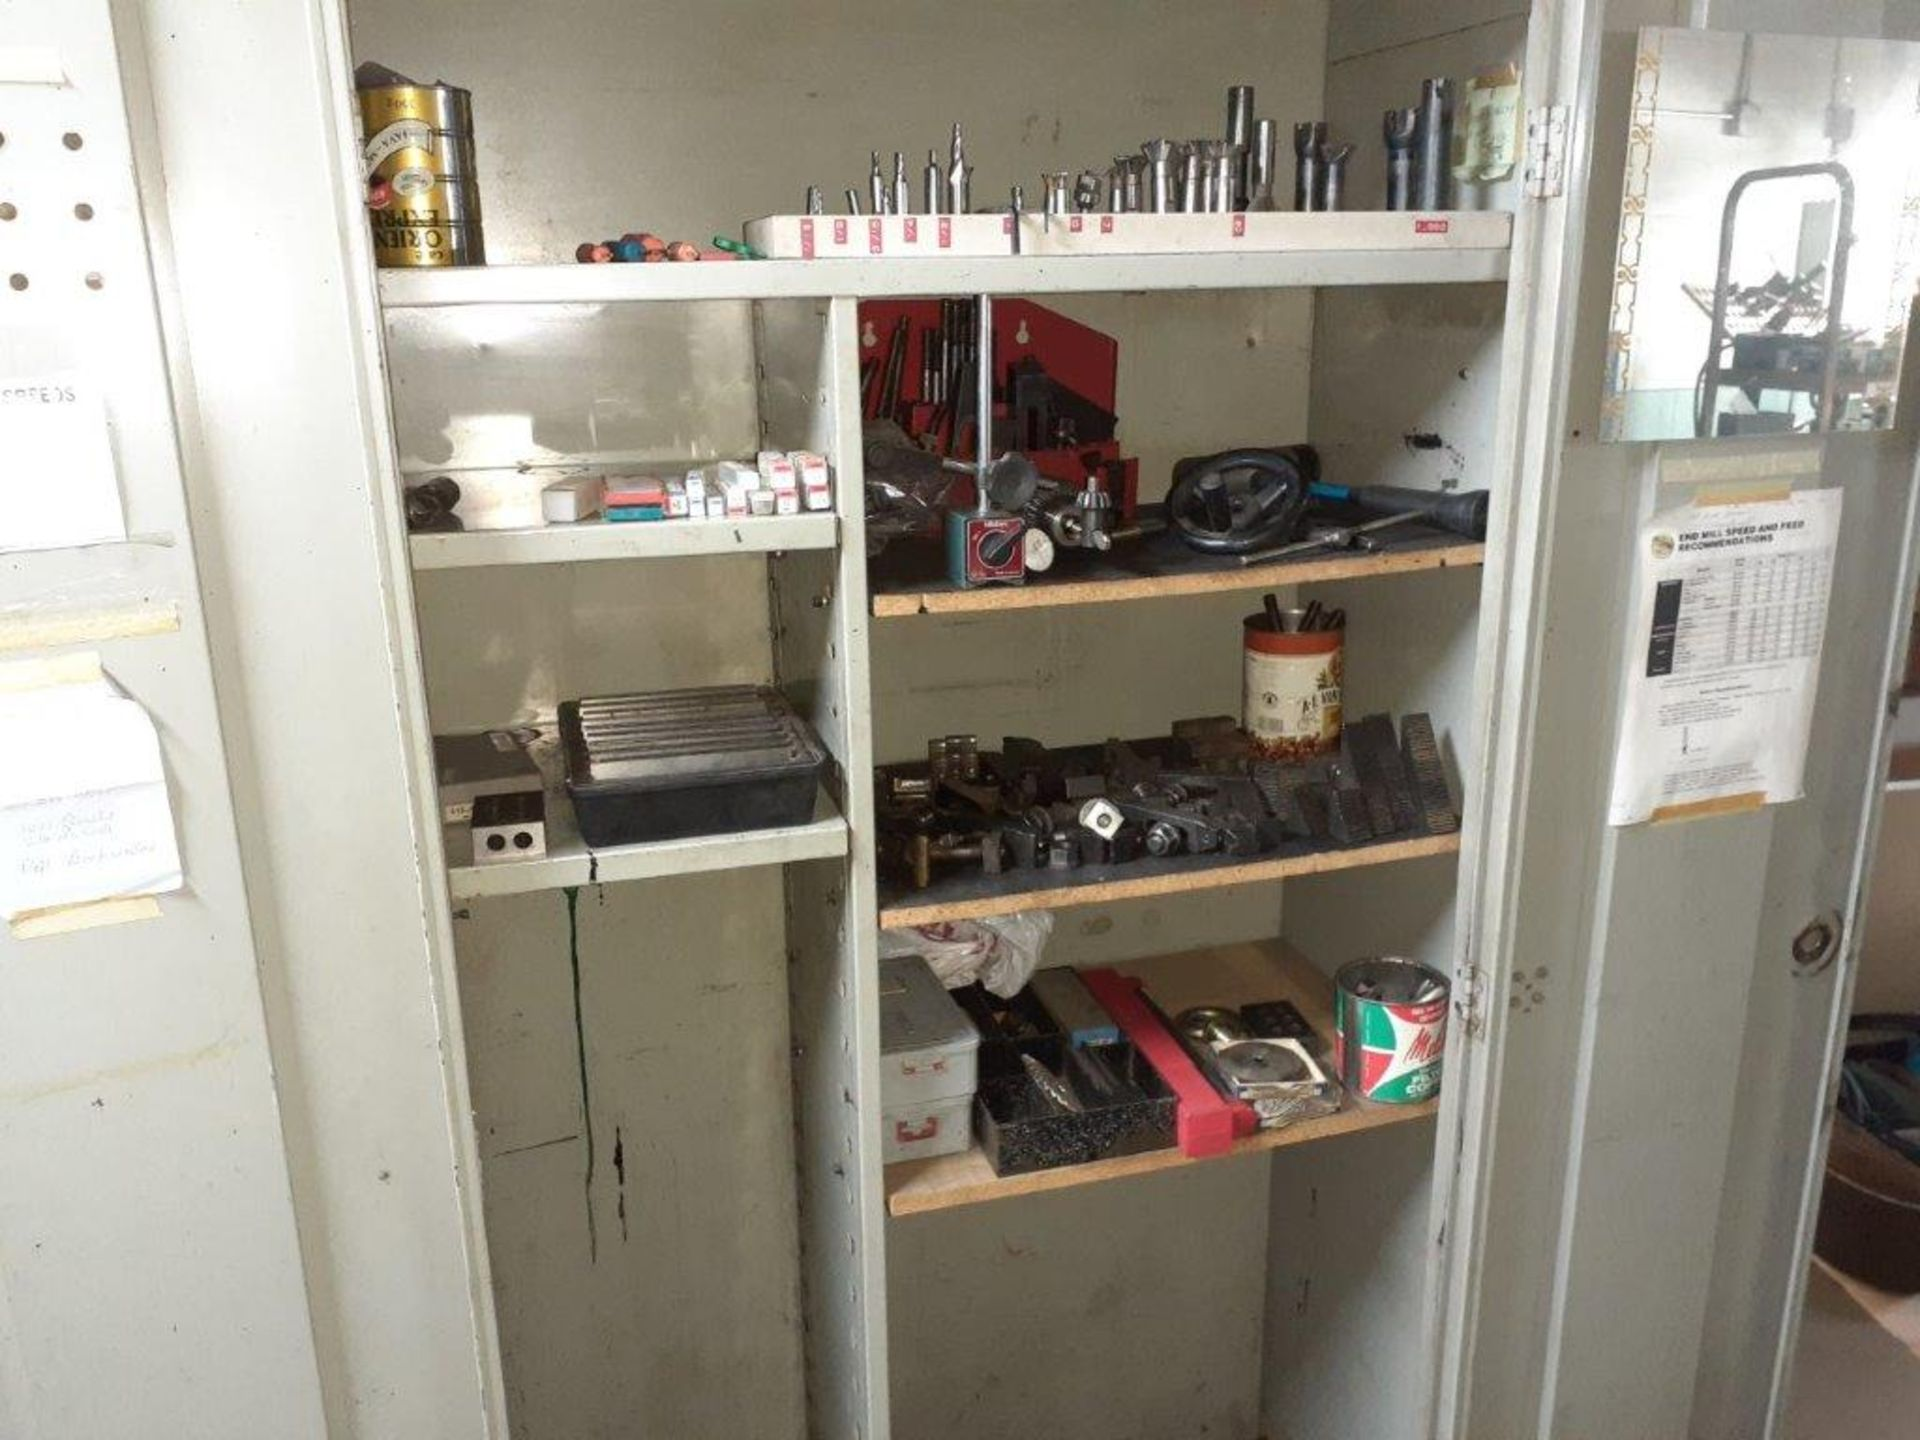 LOT: assorted Milling Machine Tools, ie: Milling Knives, Table Mounts, Drill Bits, Magnetic Tool